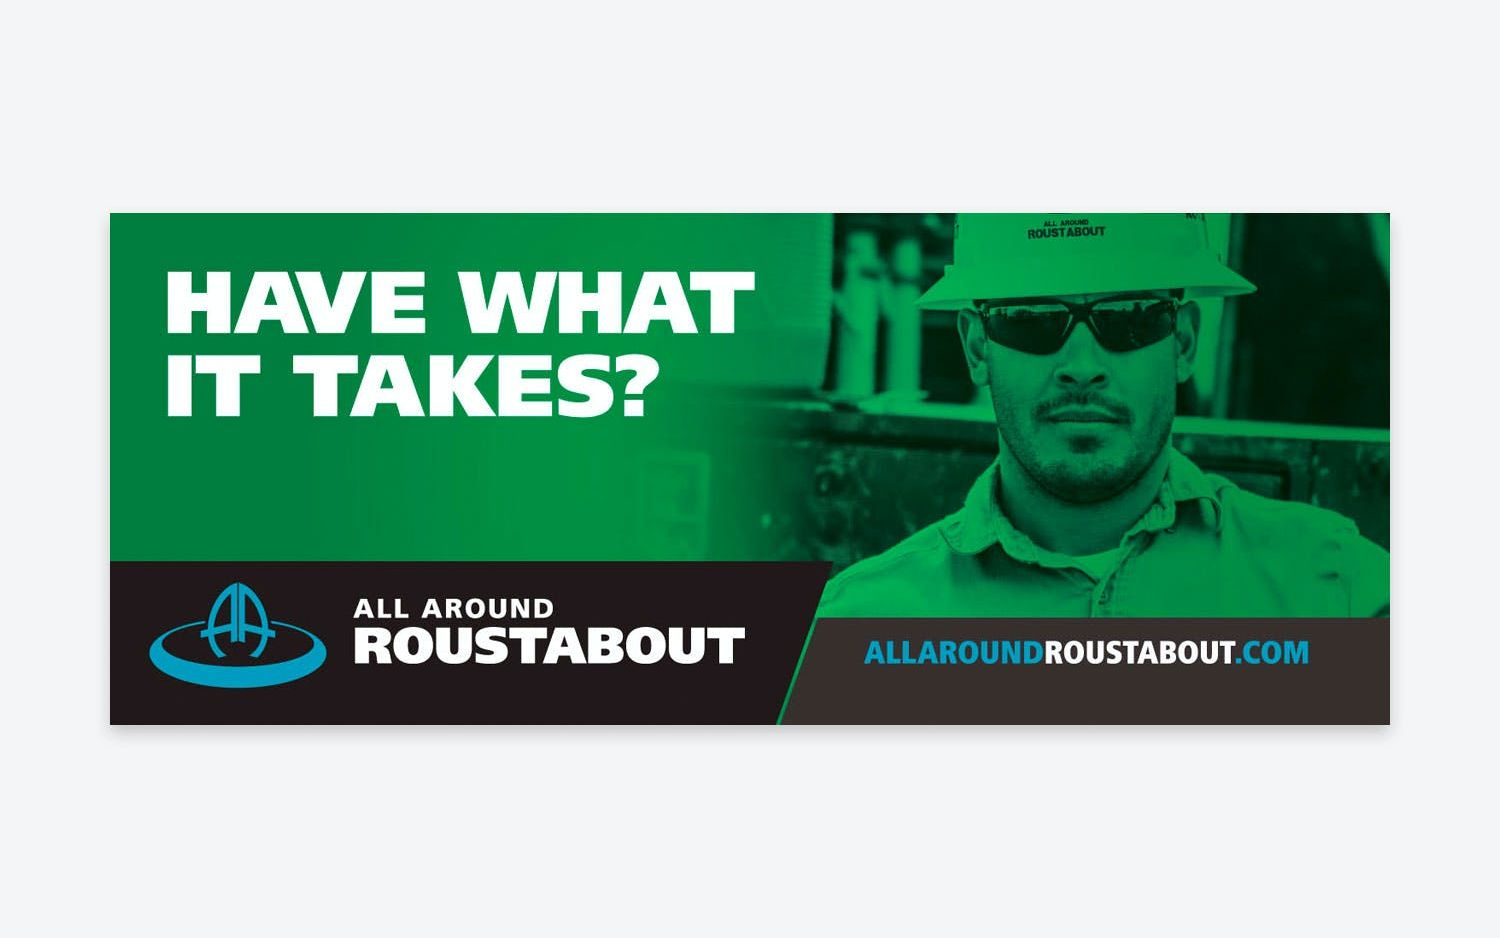 All Around Roustabout - Have what it takes? Billboard